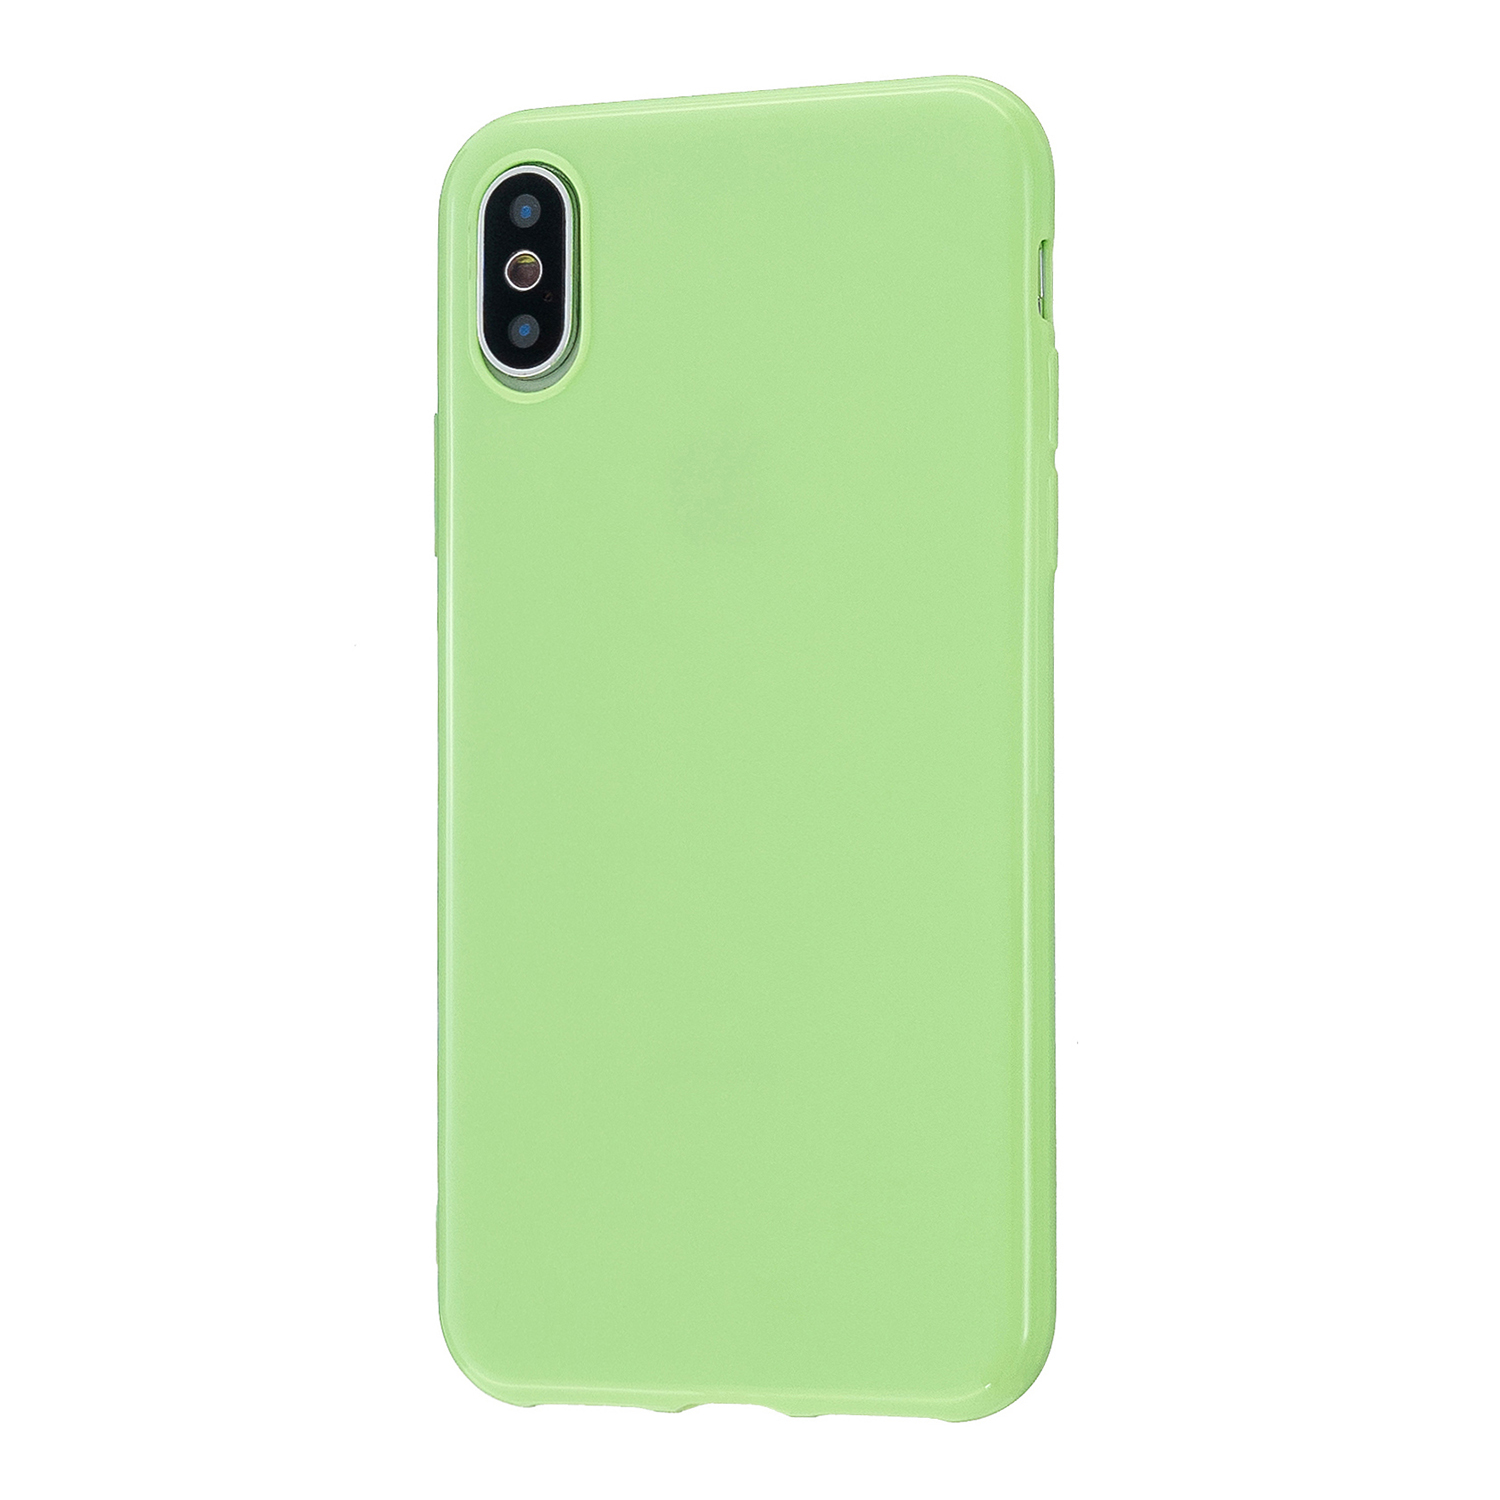 For iPhone X/XS/XS Max/XR  Cellphone Cover Slim Fit Bumper Protective Case Glossy TPU Mobile Phone Shell Fluorescent green